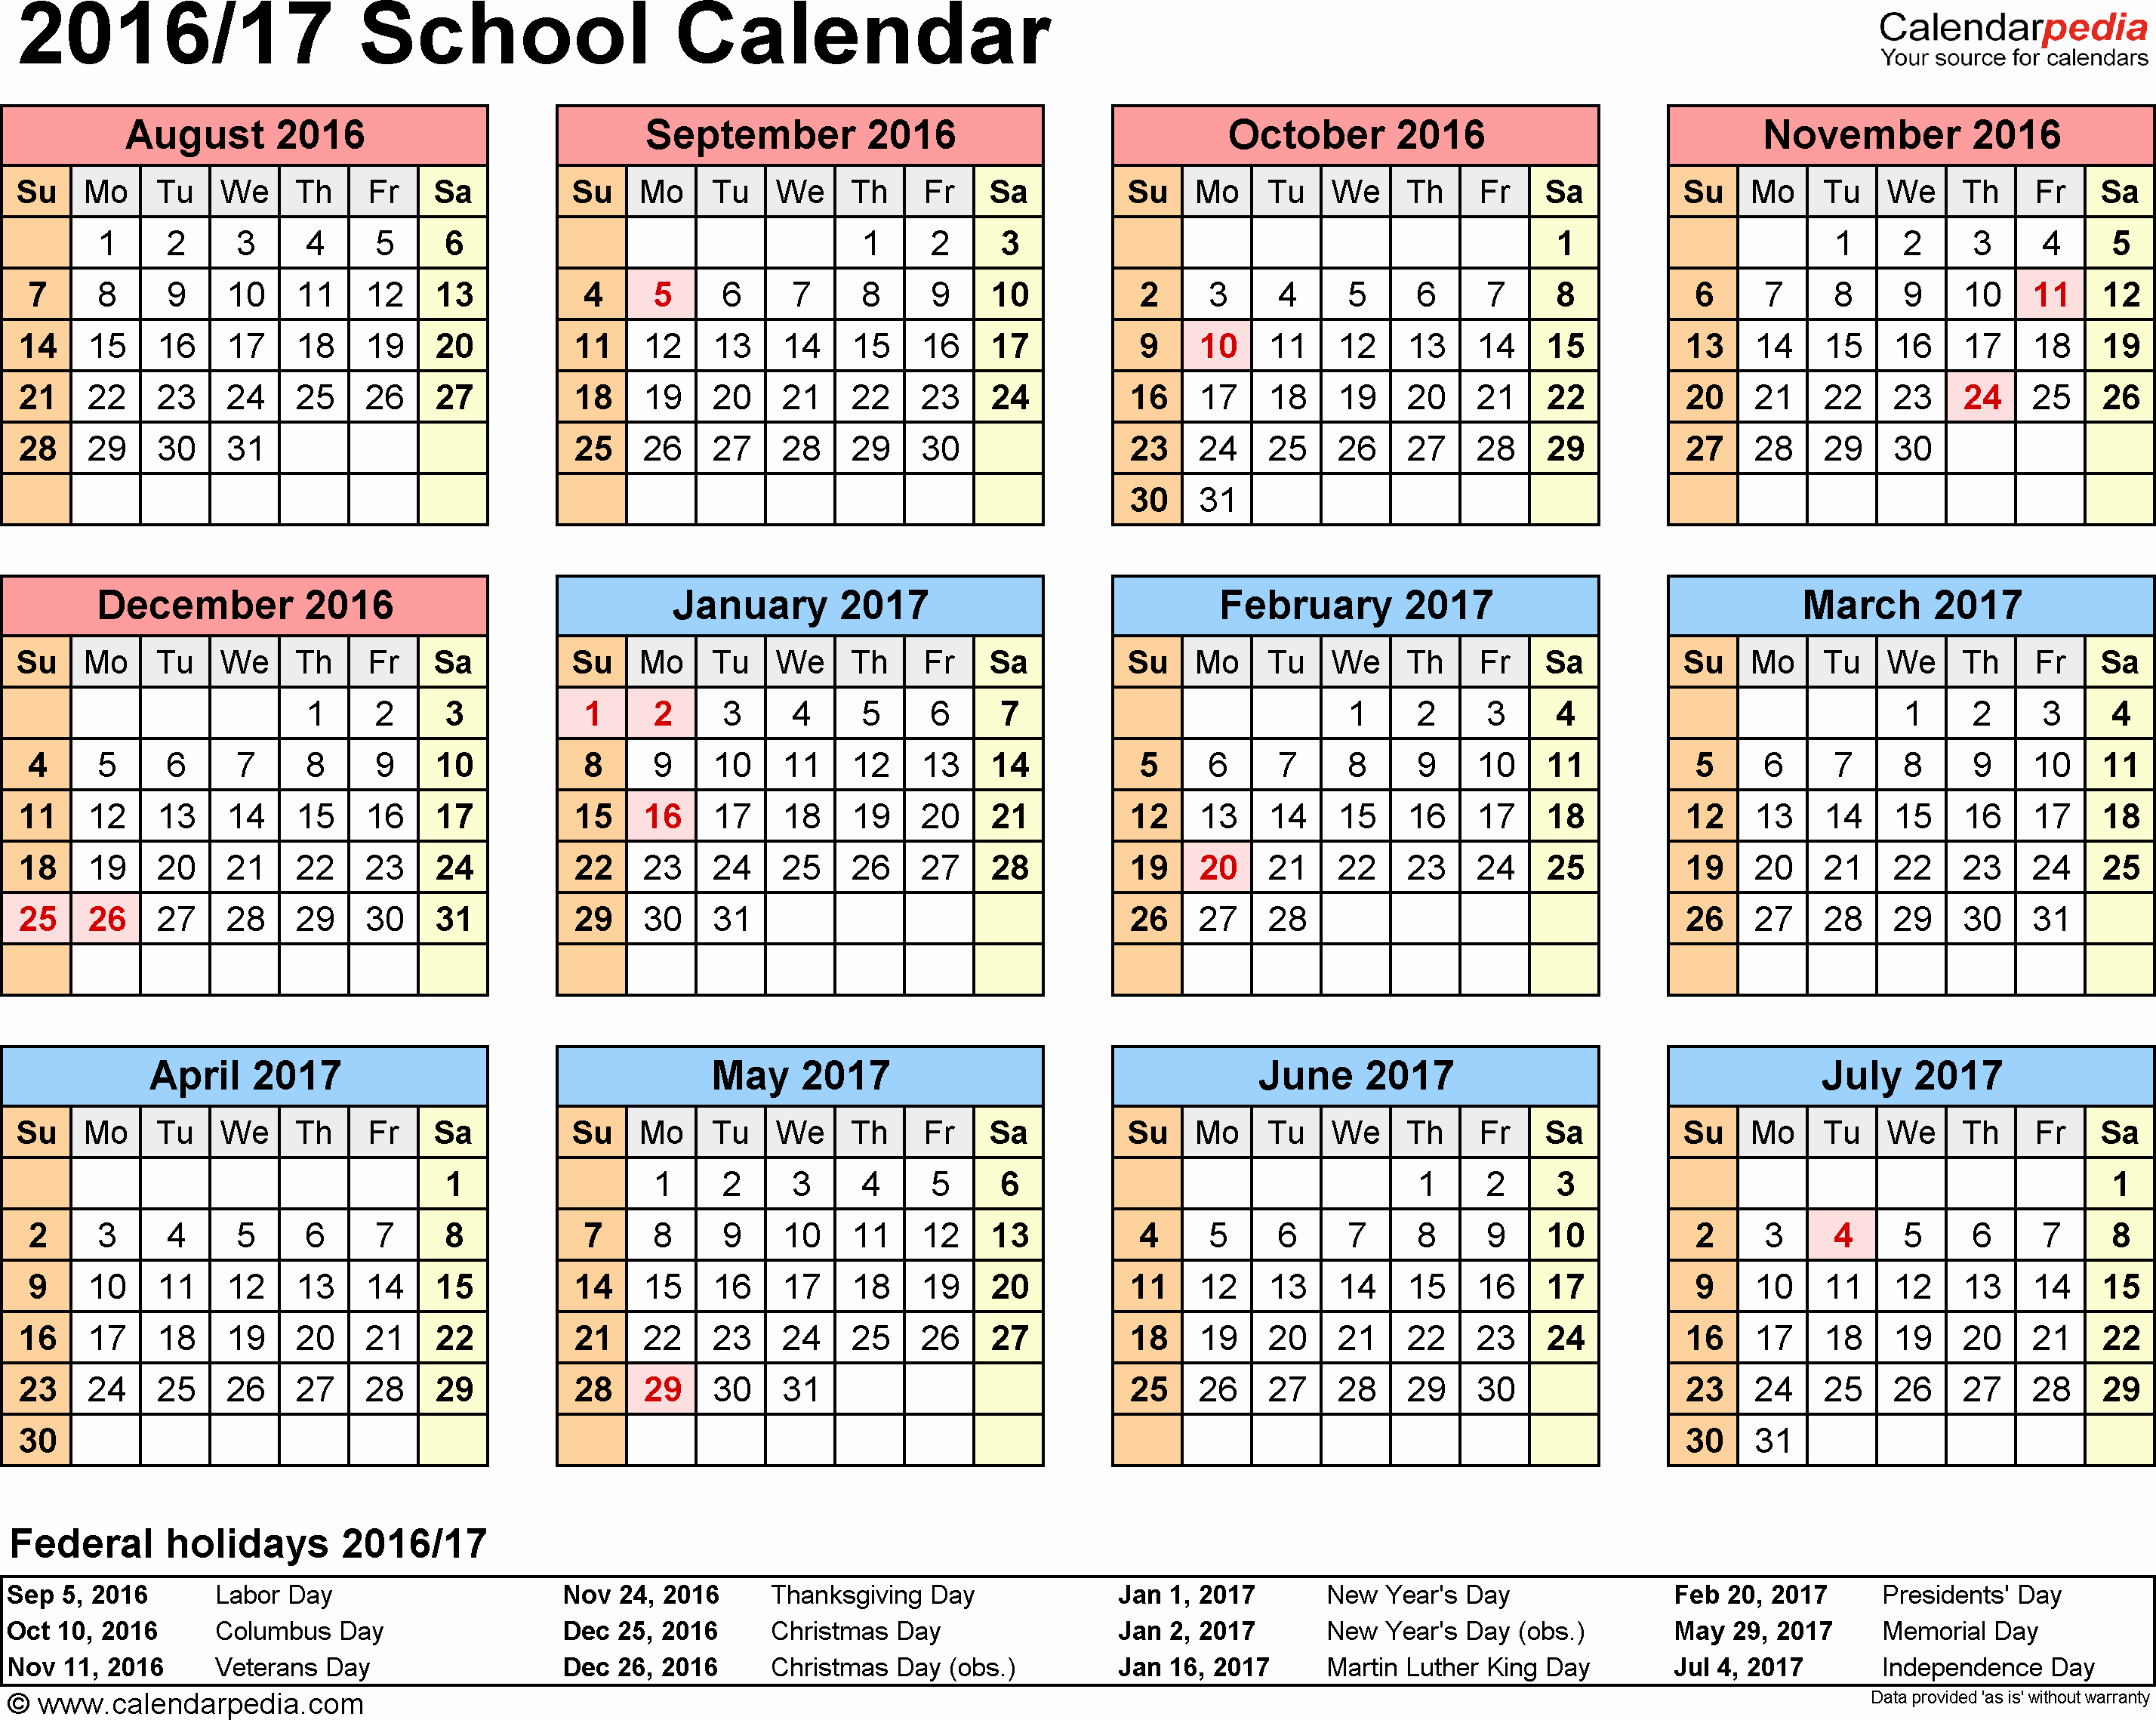 Editable Calendar 2016-17 Elegant School Calendars 2016 2017 as Free Printable Pdf Templates